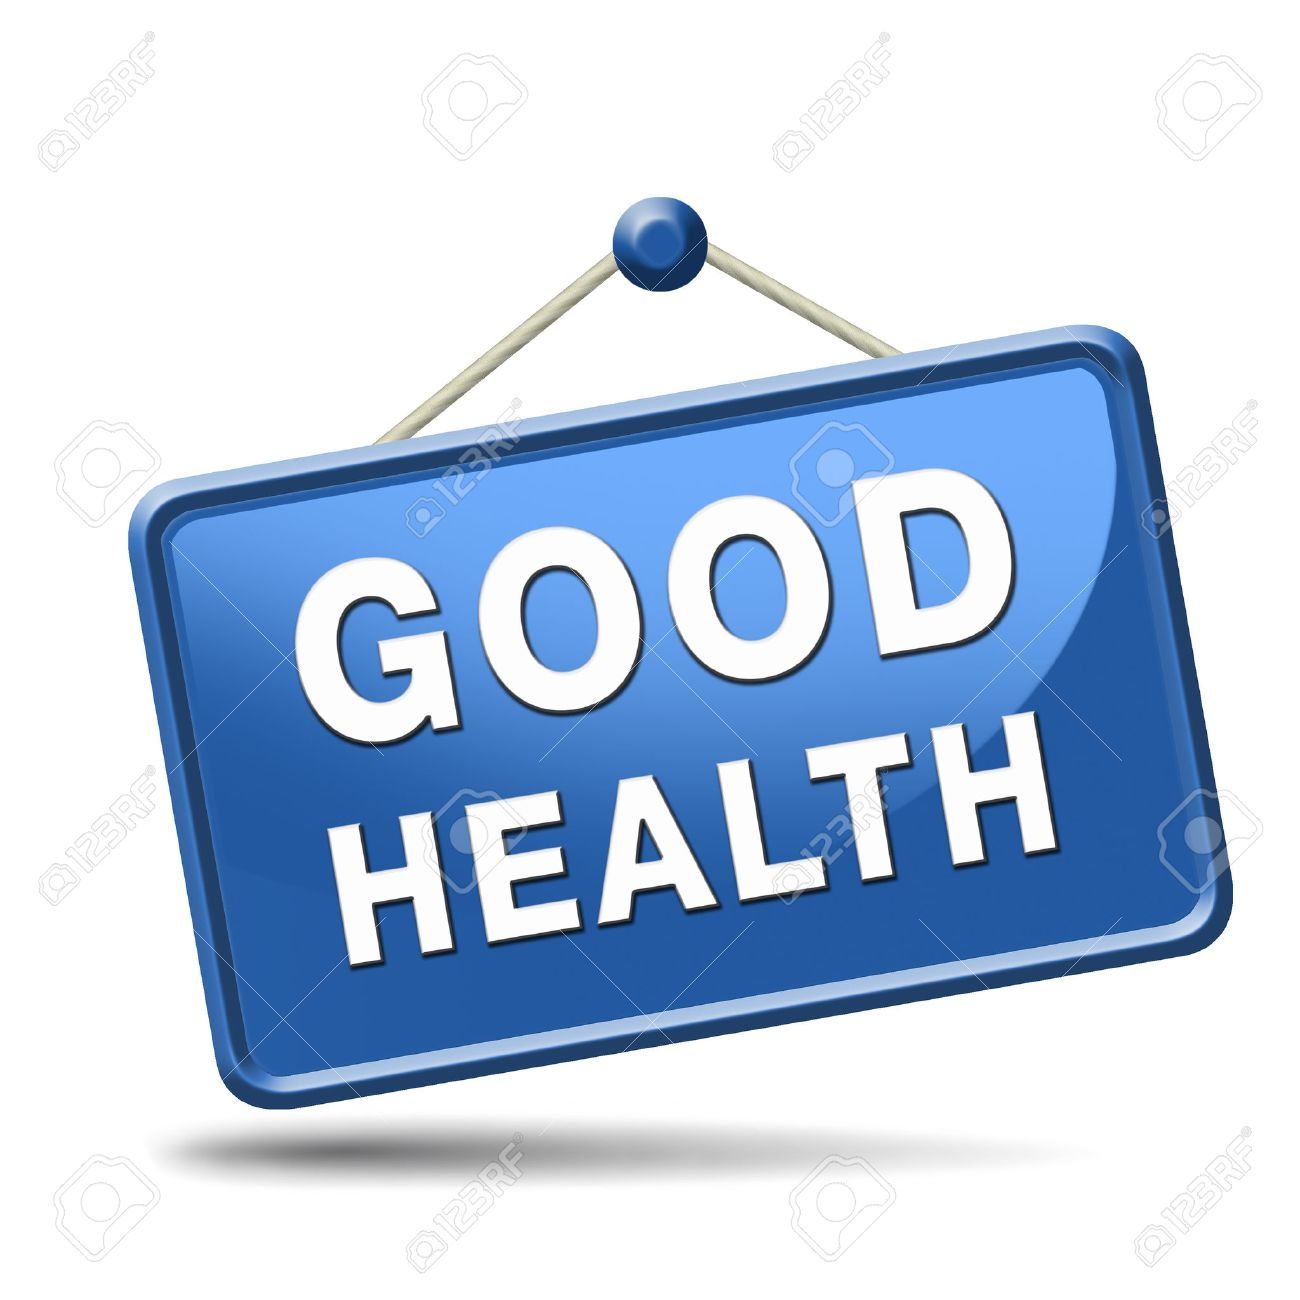 Good Health Healthy Life And Vitality Energy Sane Mind And Body in Good Health